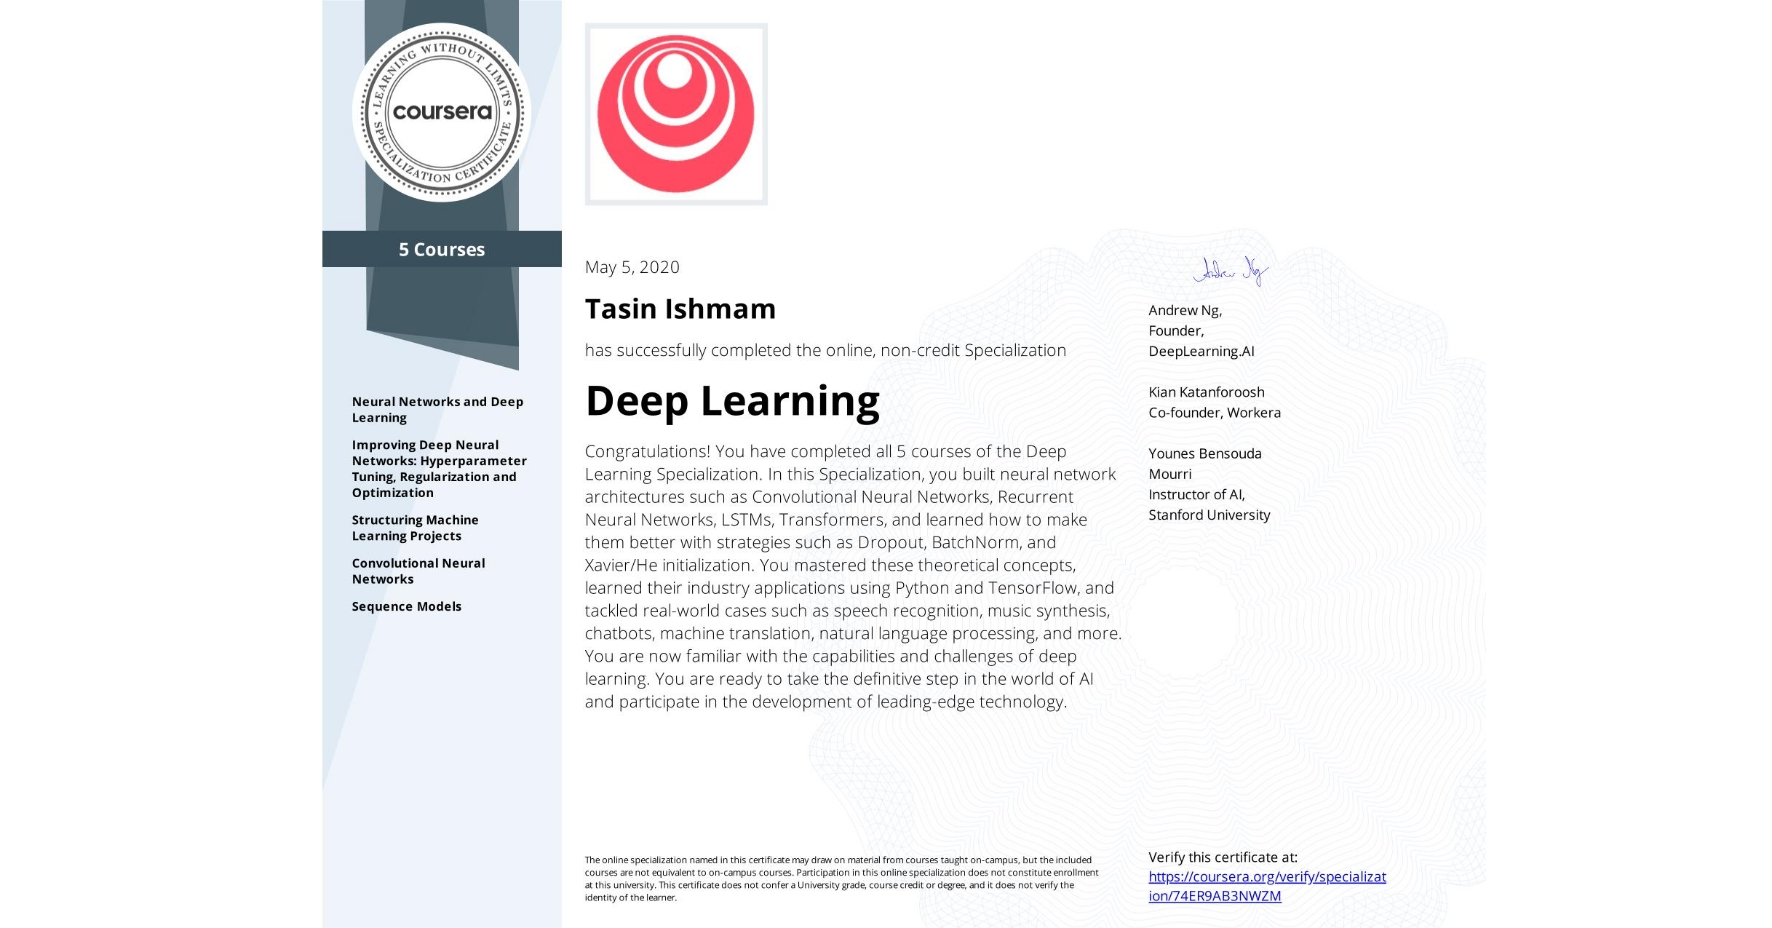 View certificate for Tasin Ishmam, Deep Learning, offered through Coursera. Congratulations! You have completed all five courses of the Deep Learning Specialization.  In this Specialization, you built neural network architectures such as Convolutional Neural Networks, Recurrent Neural Networks, LSTMs, Transformers and learned how to make them better with strategies such as Dropout, BatchNorm, Xavier/He initialization, and more. You mastered these theoretical concepts and their application using Python and TensorFlow and also tackled real-world case studies such as autonomous driving, sign language reading, music generation, computer vision, speech recognition, and natural language processing.   You're now familiar with the capabilities, challenges, and consequences of deep learning and are ready to participate in the development of leading-edge AI technology.